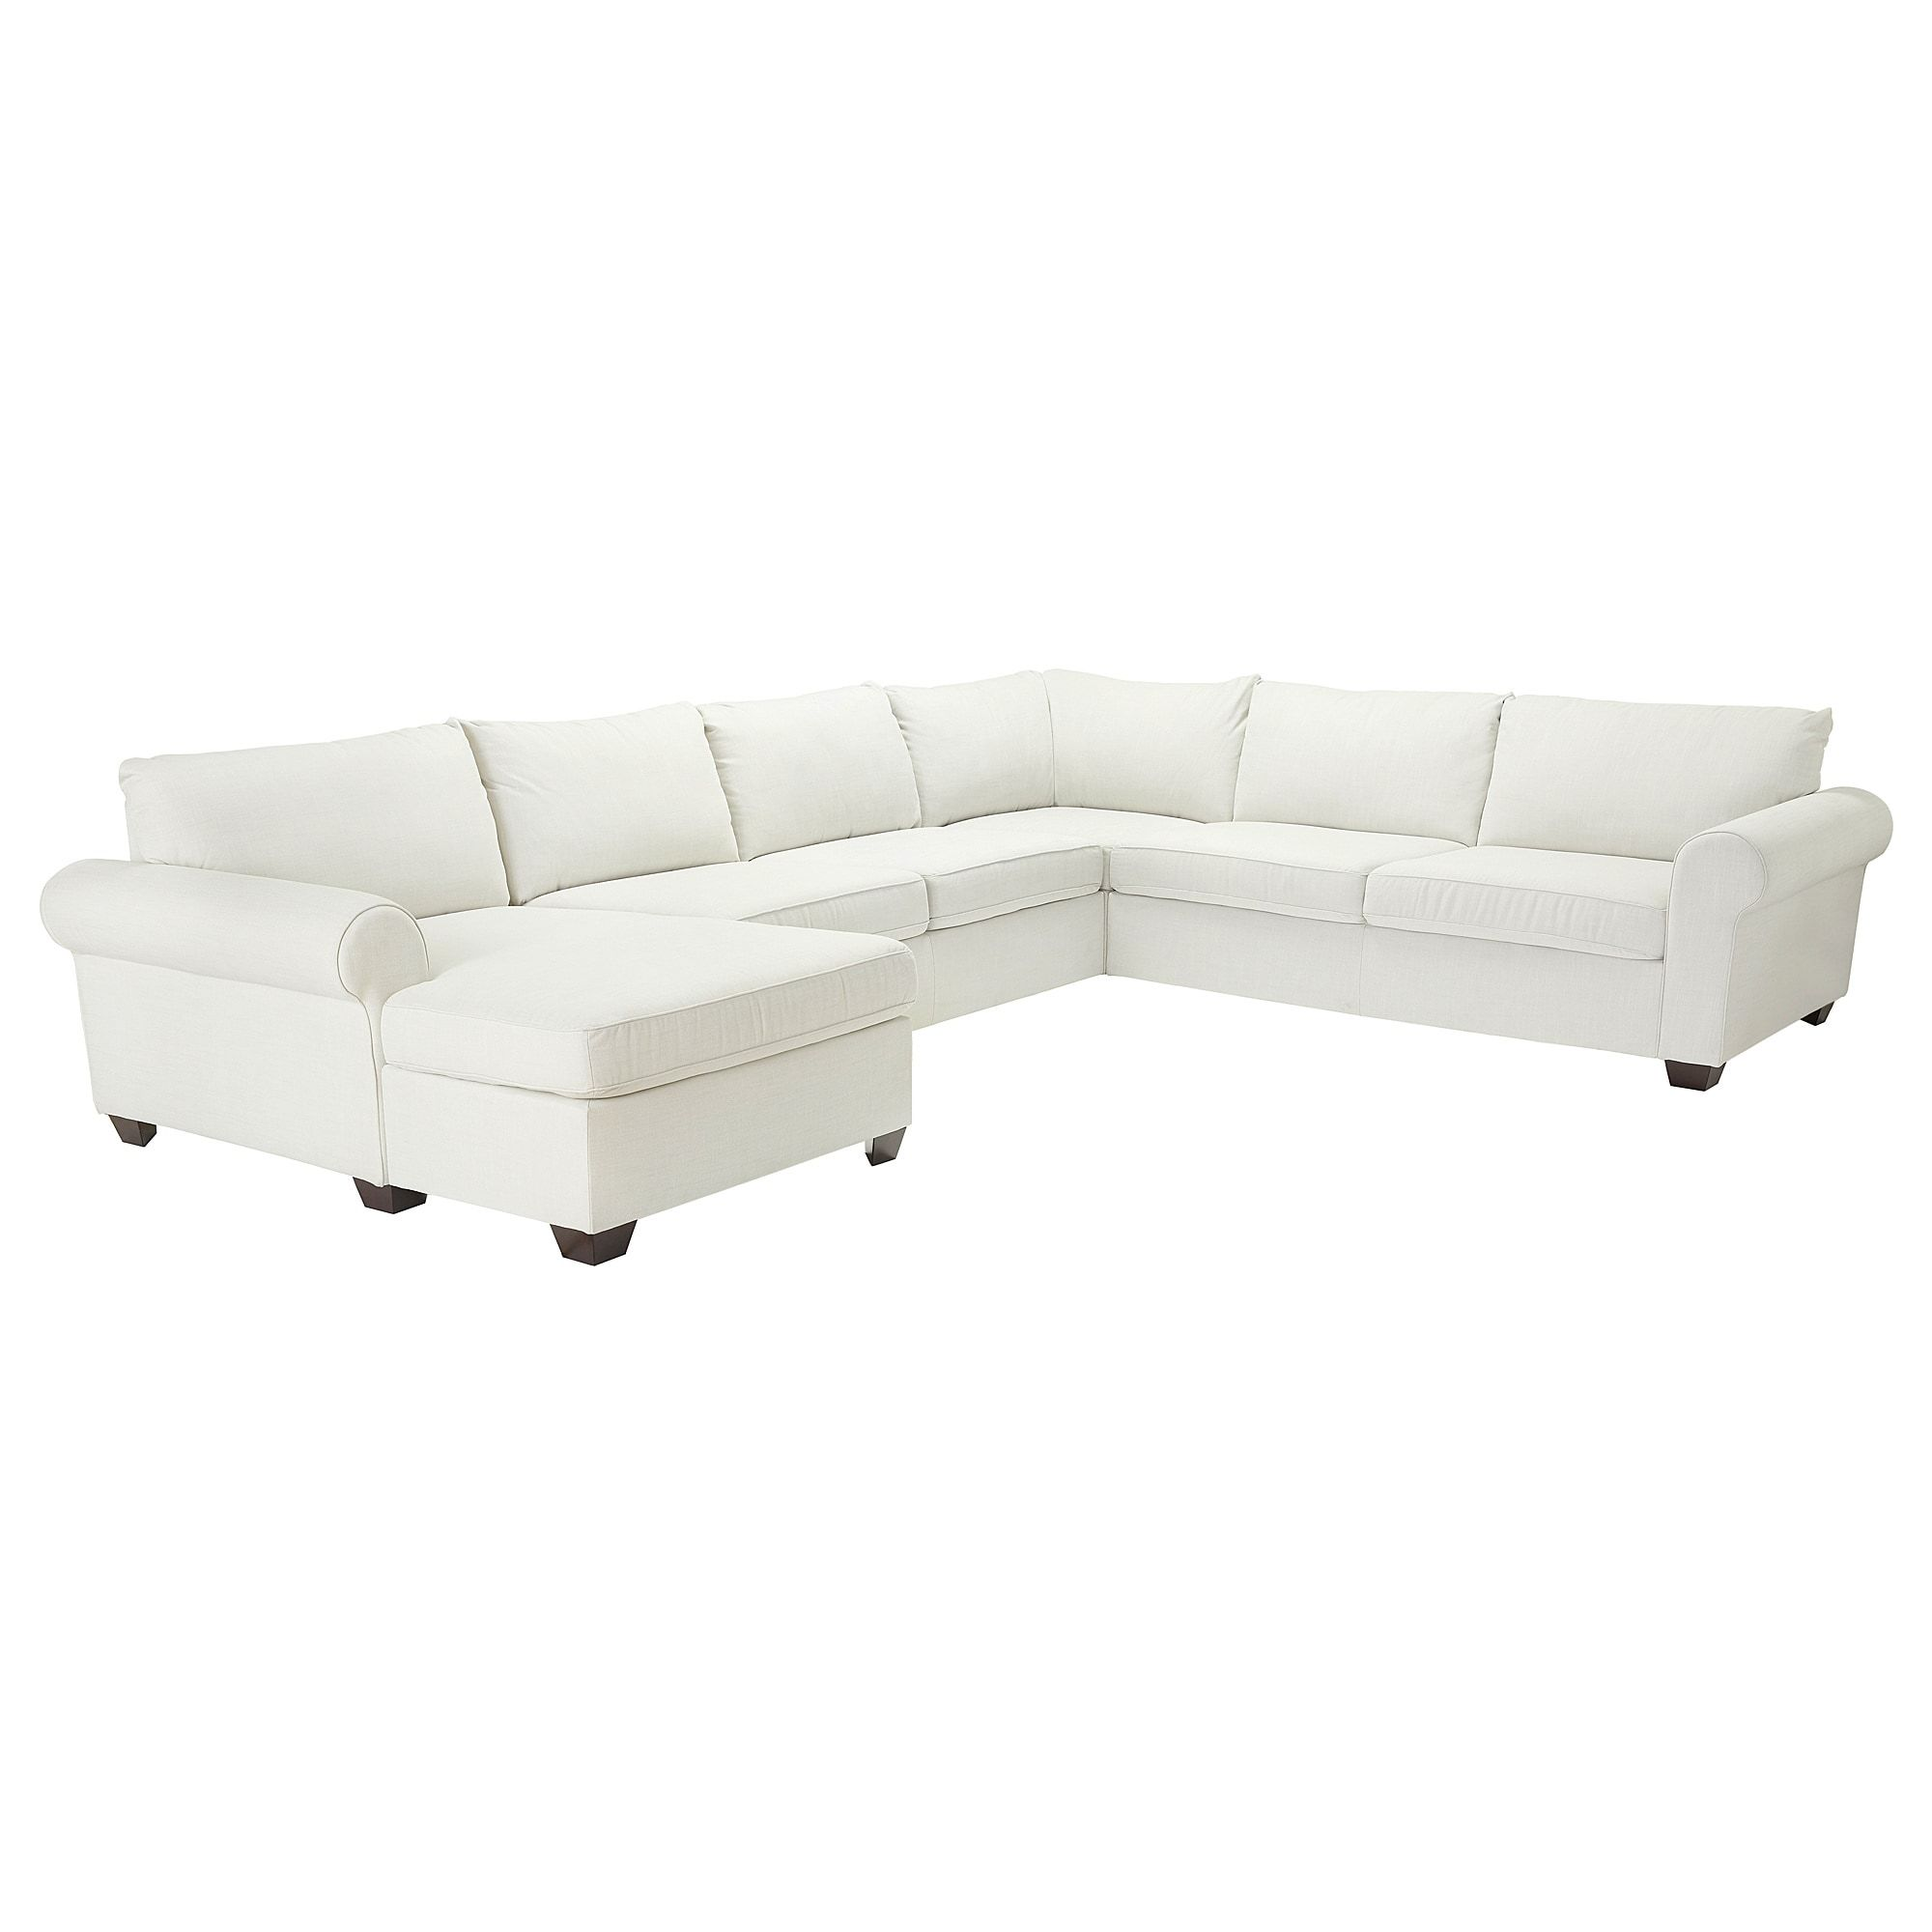 ELLESTORP, Sectional, 4-seat Corner, With Chaise